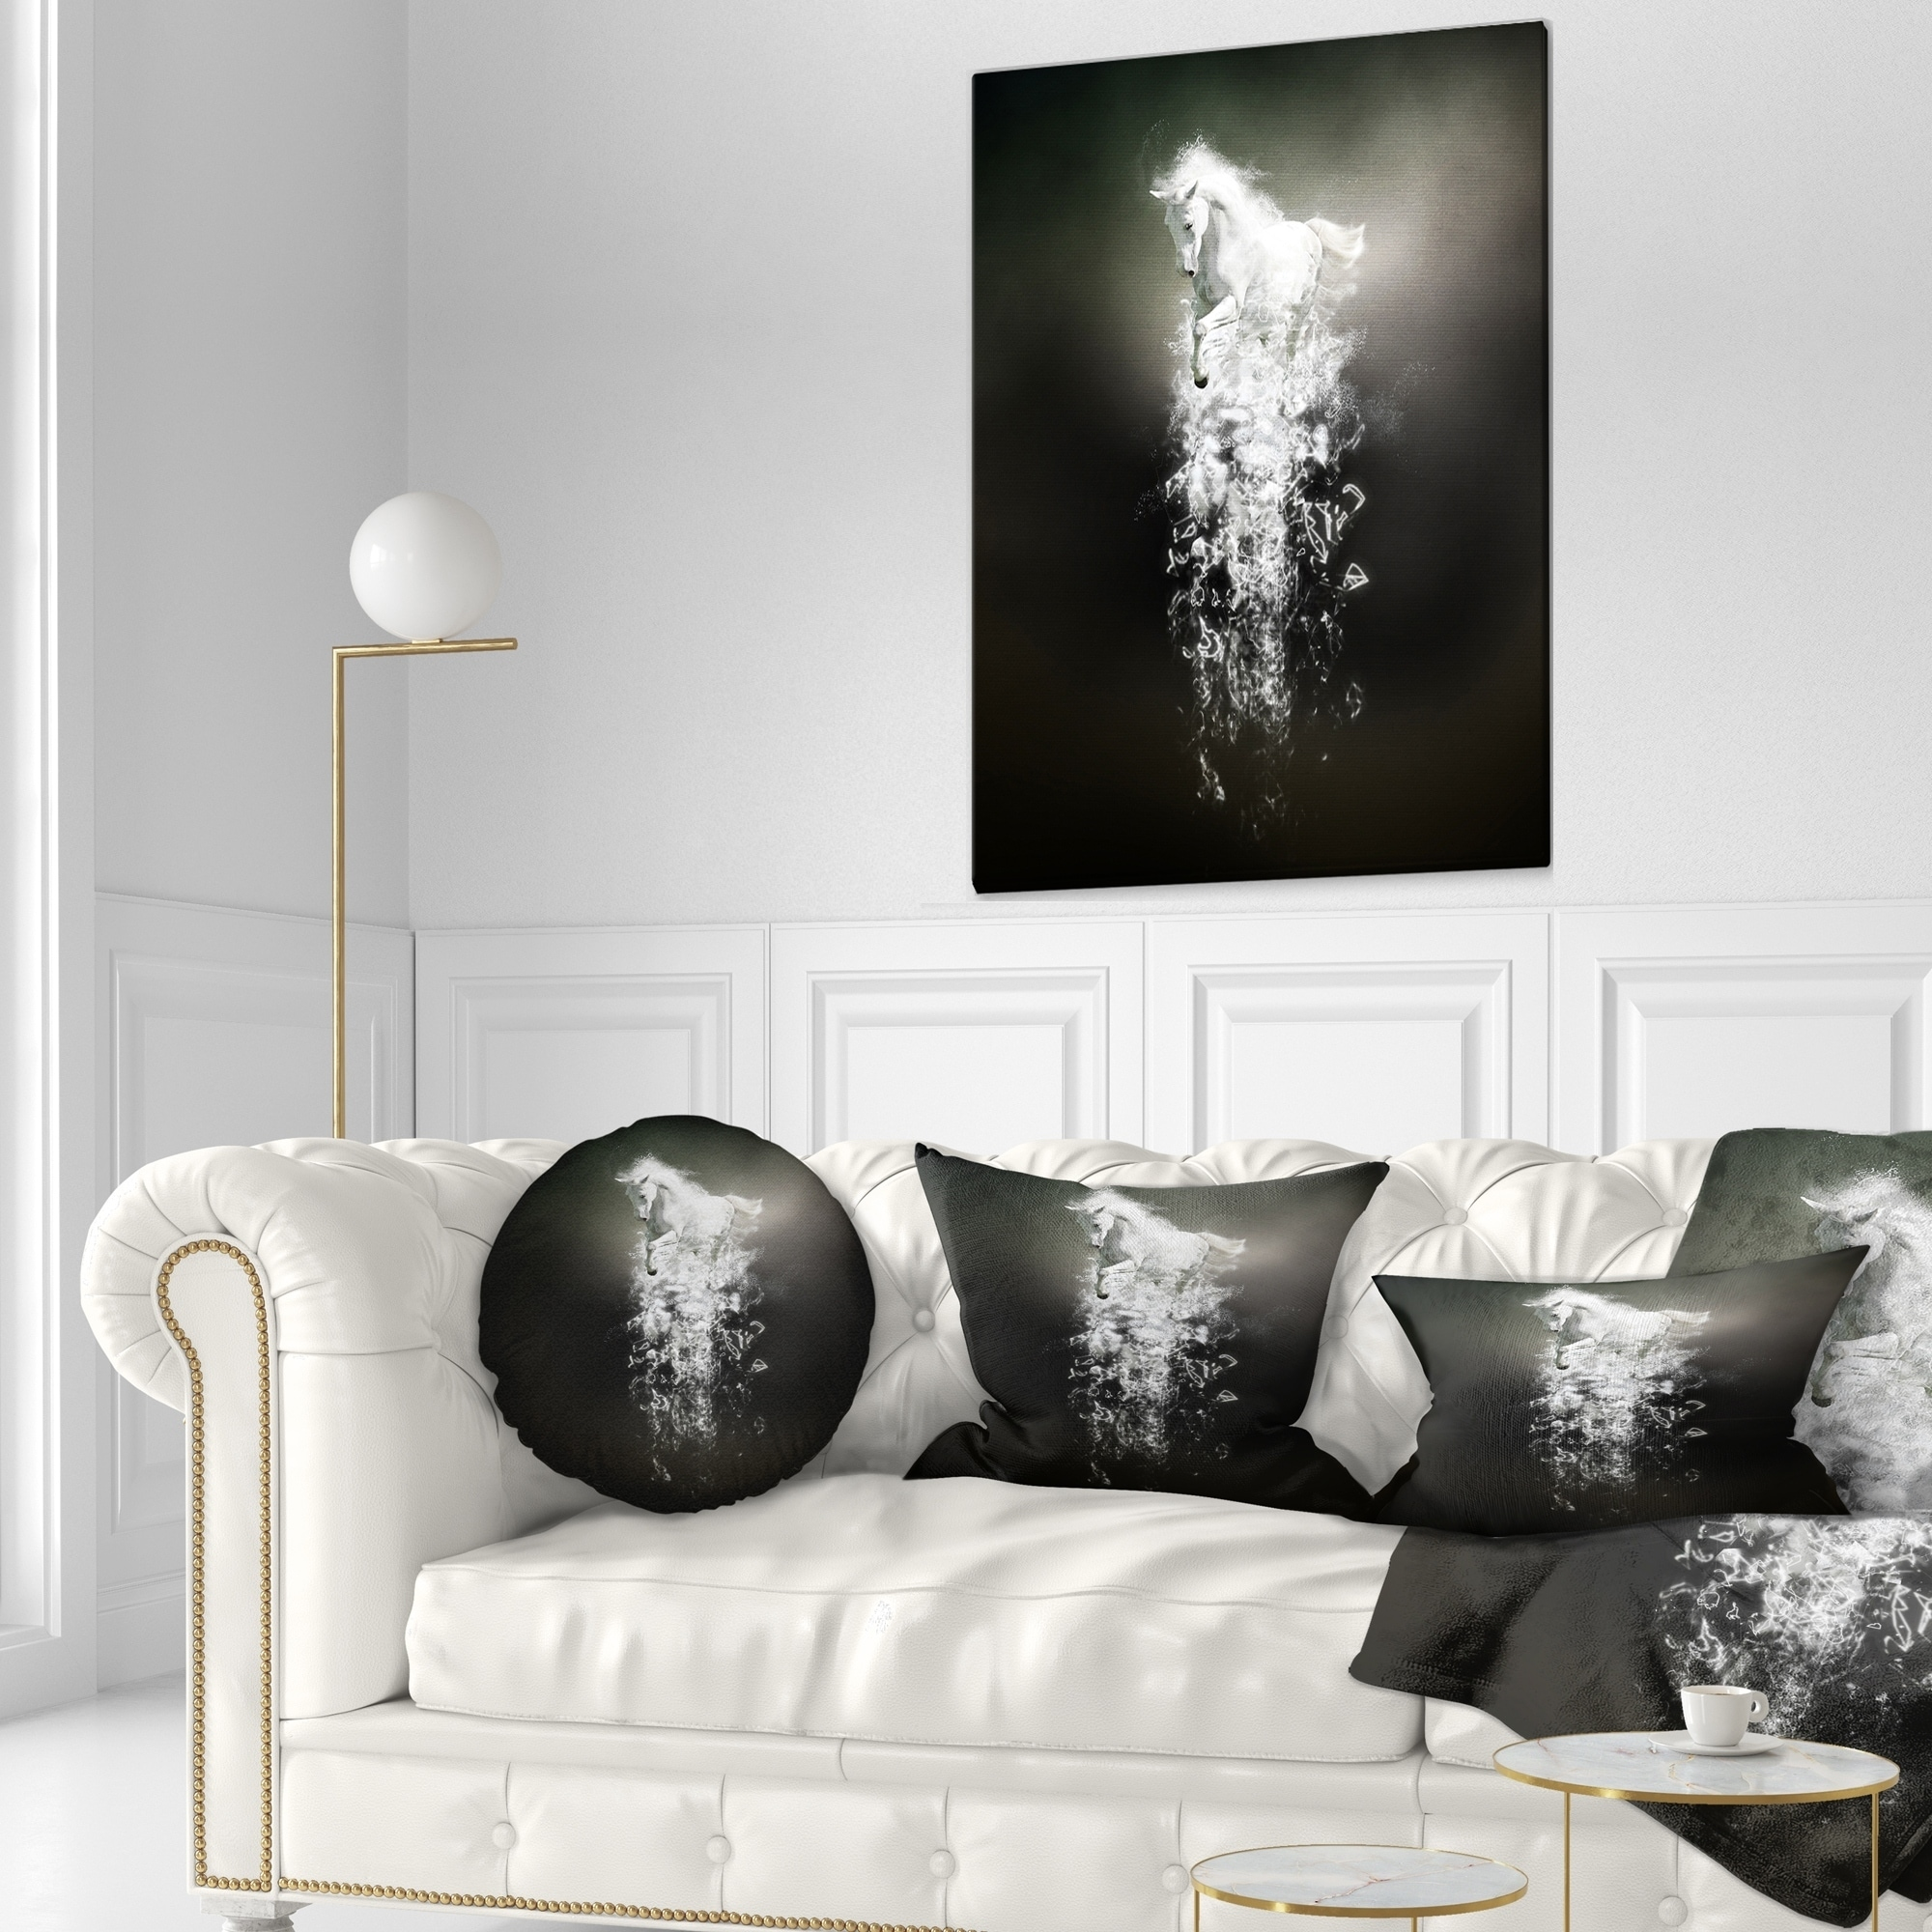 Designart CU13430-26-26 Fantasy White Horse Running Animal Throw Cushion Pillow Cover for Living Room Cushion Cover Printed on Both Side Sofa 26 in x 26 in Pillow Insert